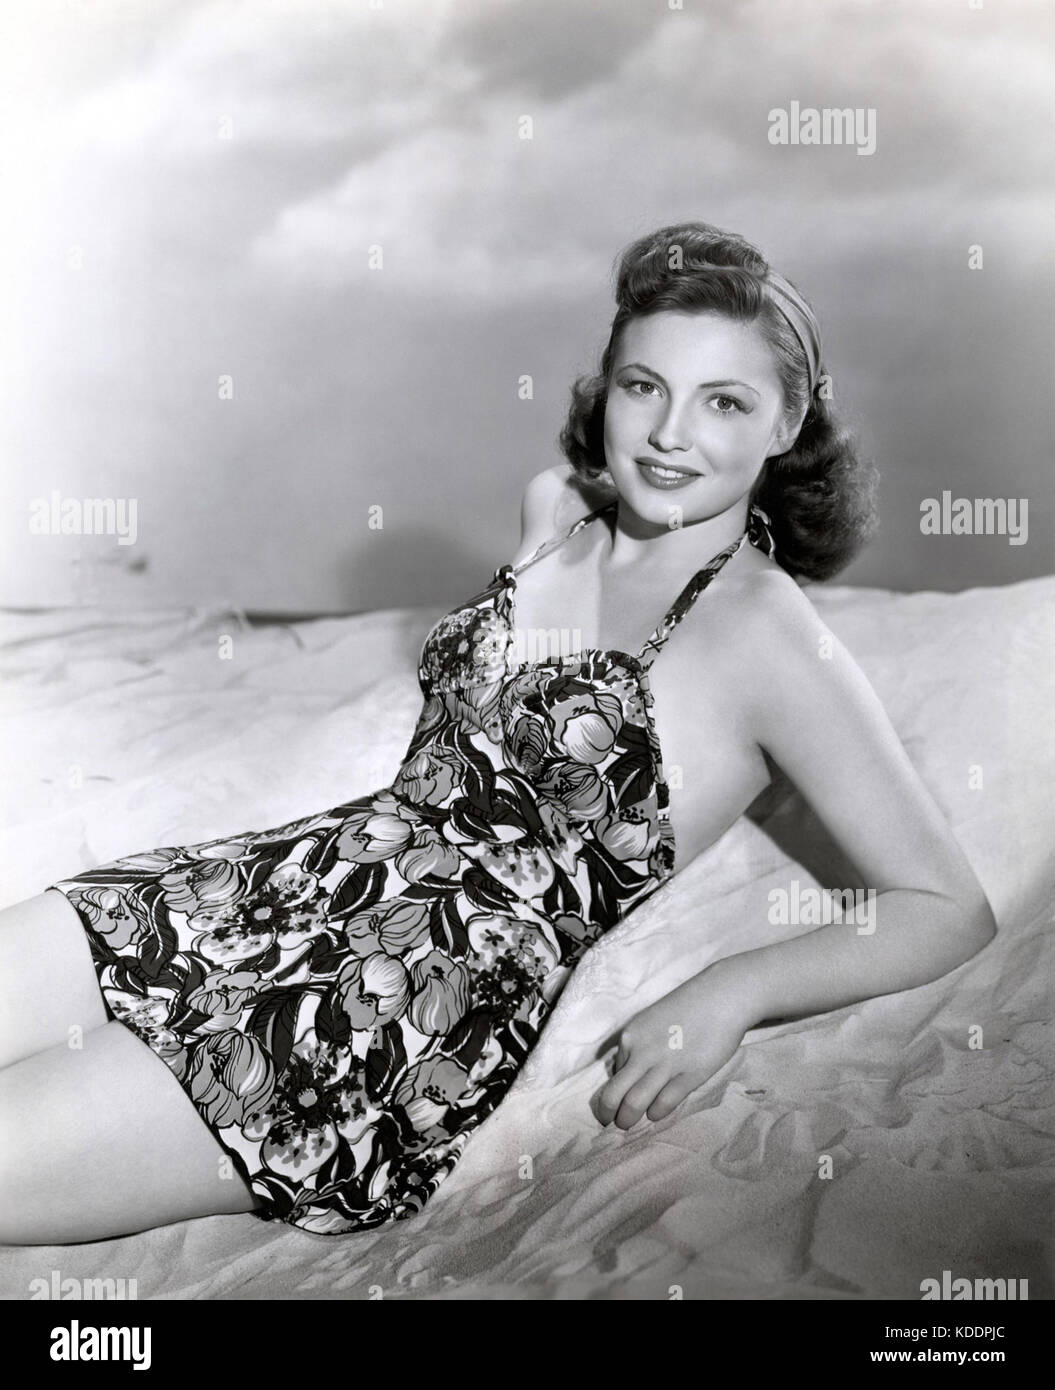 JOAN LESLIE (1925-2015) American film actress and dancer about 1942 - Stock Image